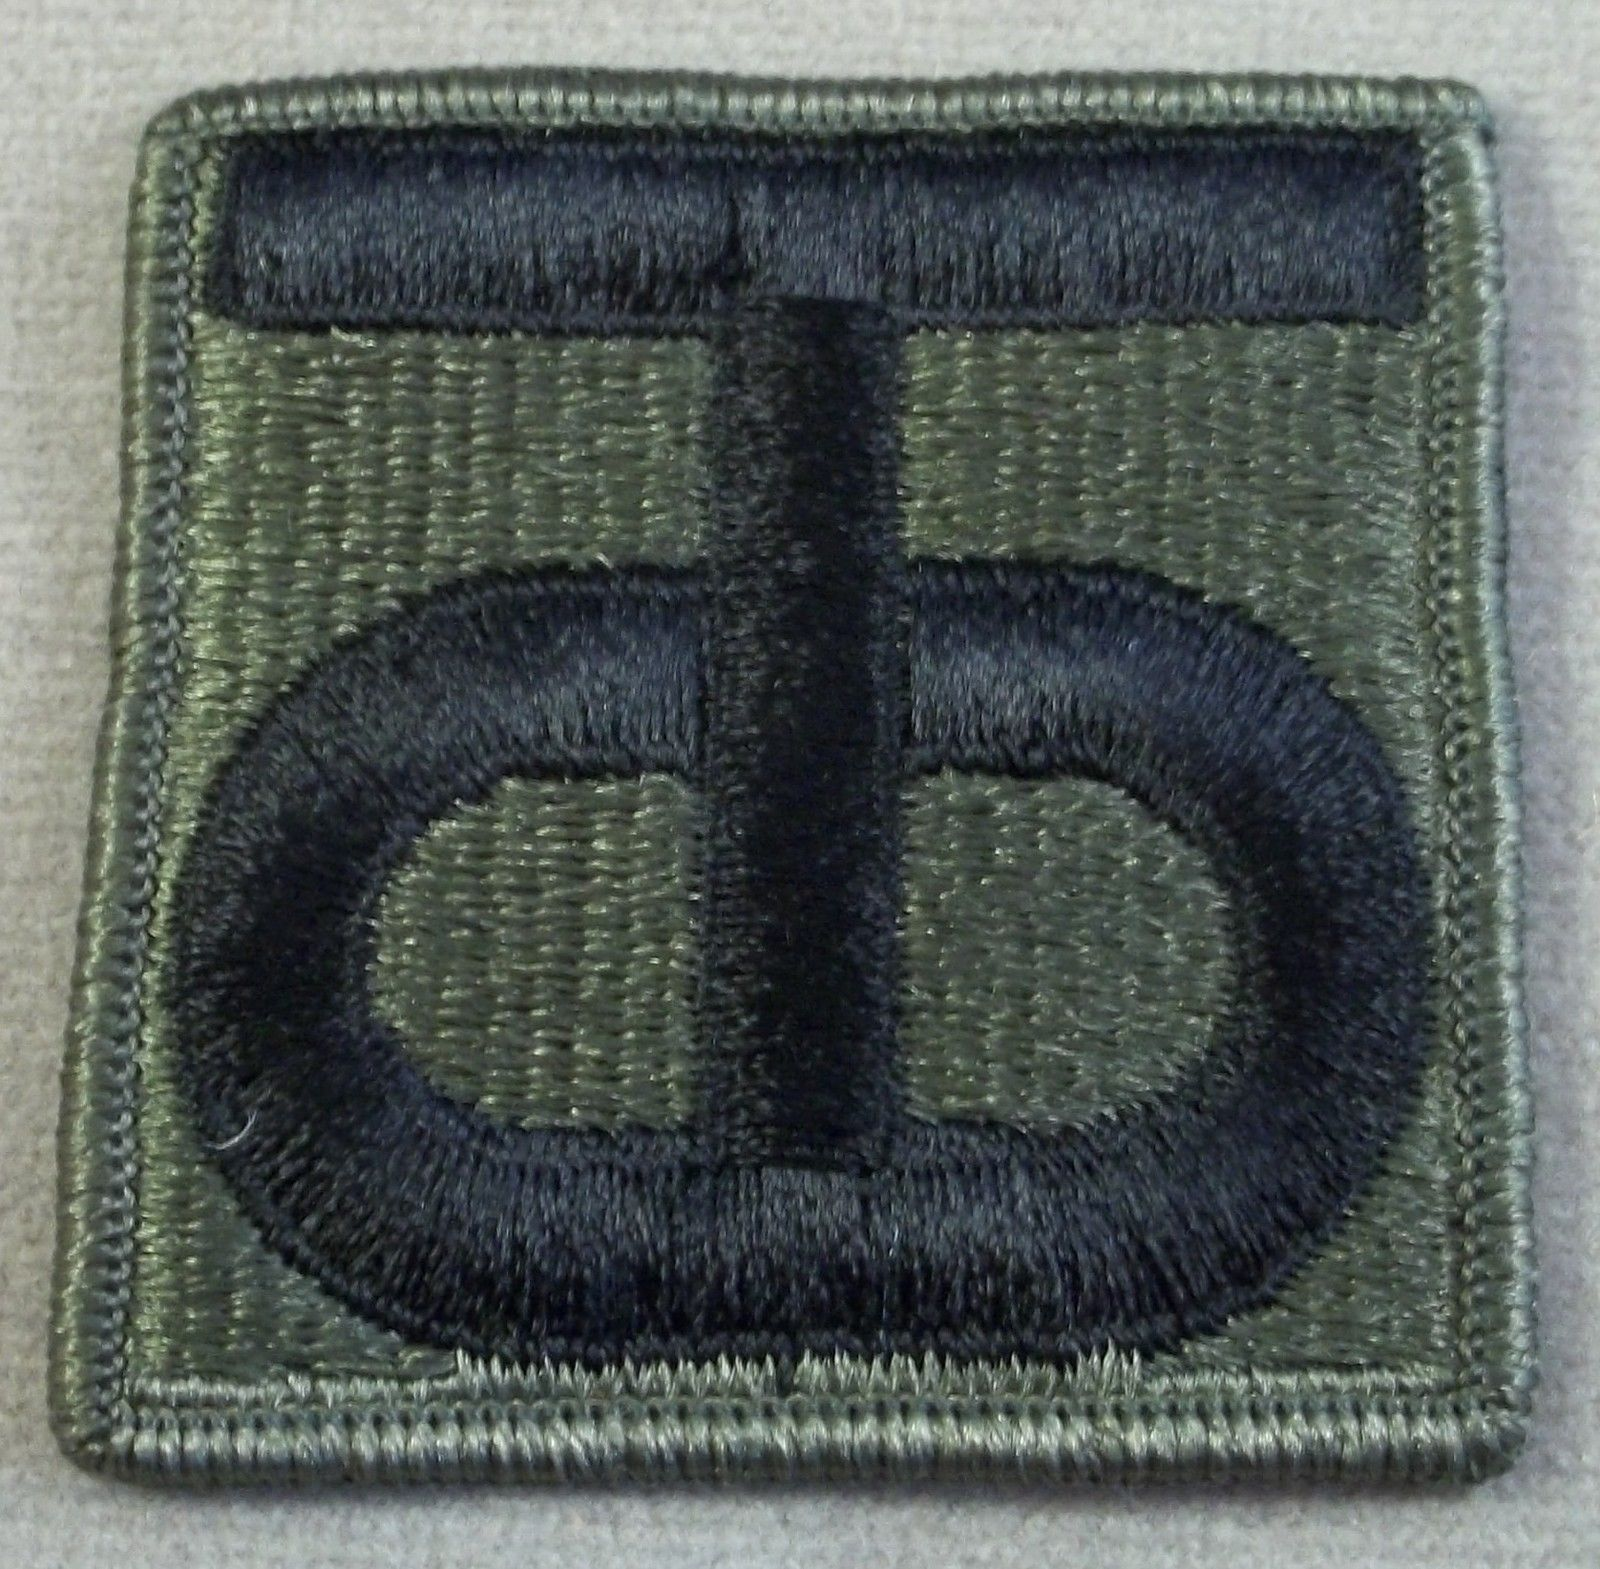 Details about US Army 90th Infantry Division Subdued